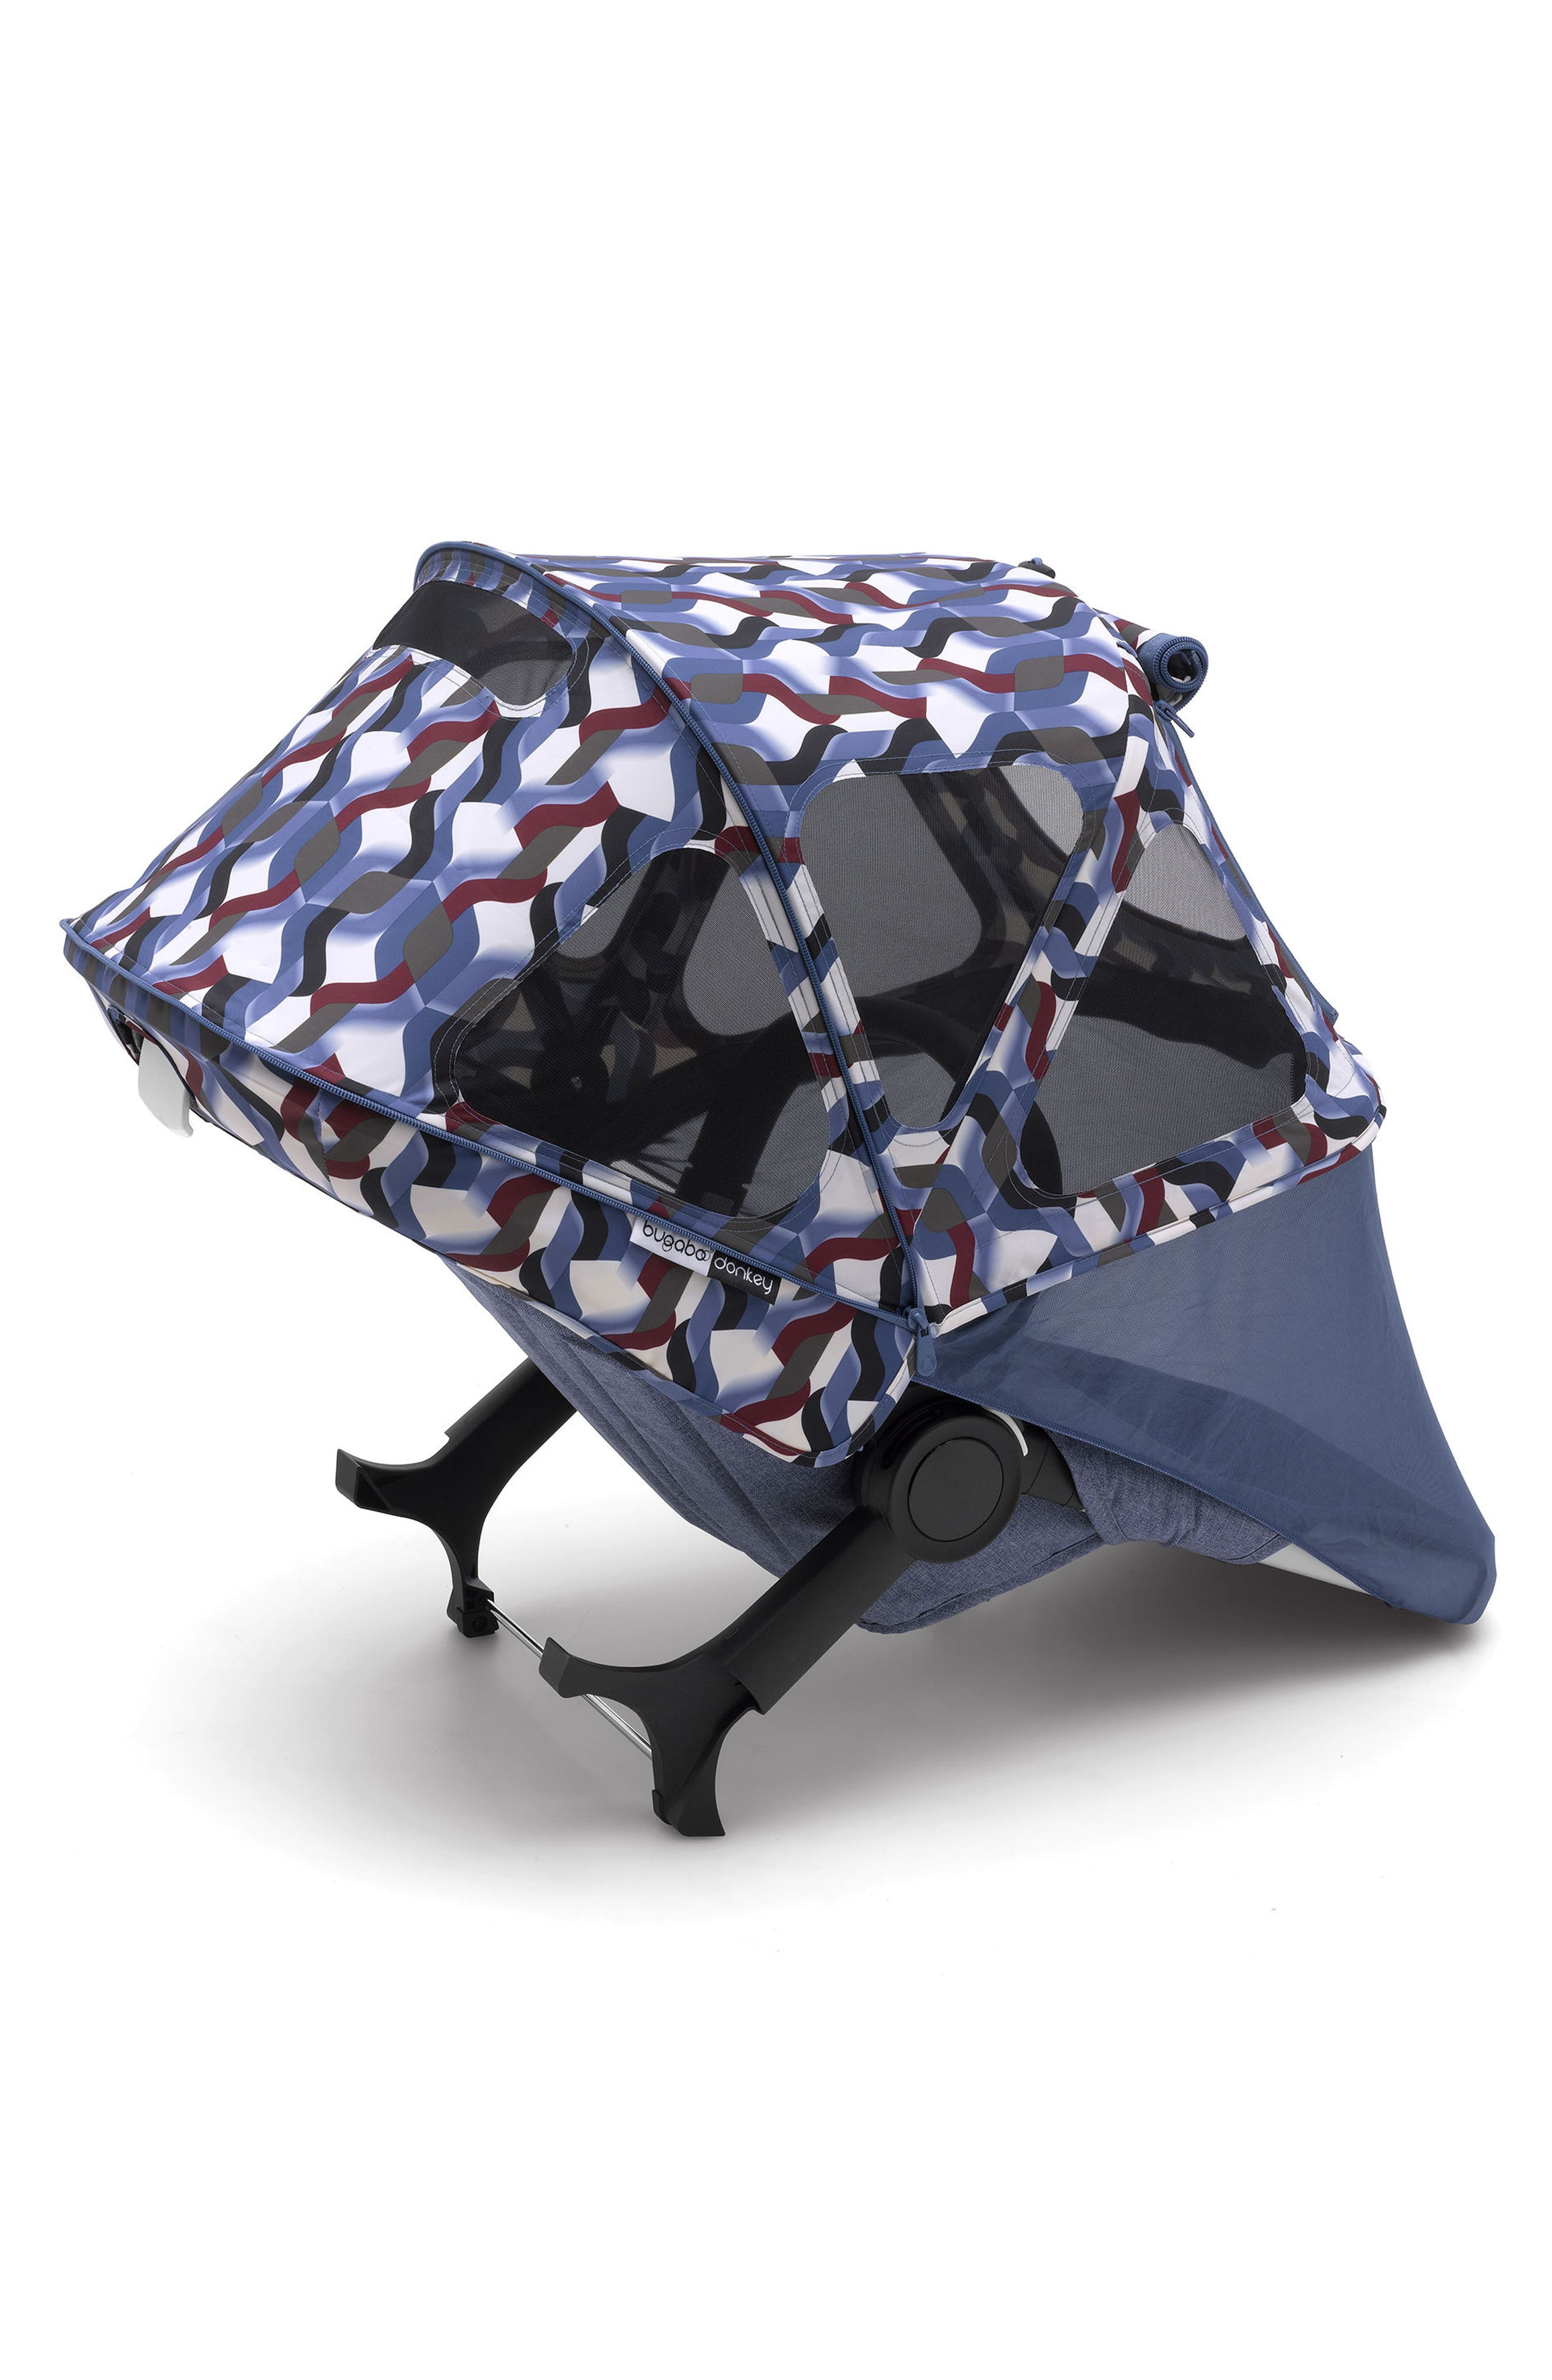 Breezy Framed Sun Canopy for Donkey2 Stroller,                         Main,                         color, Waves